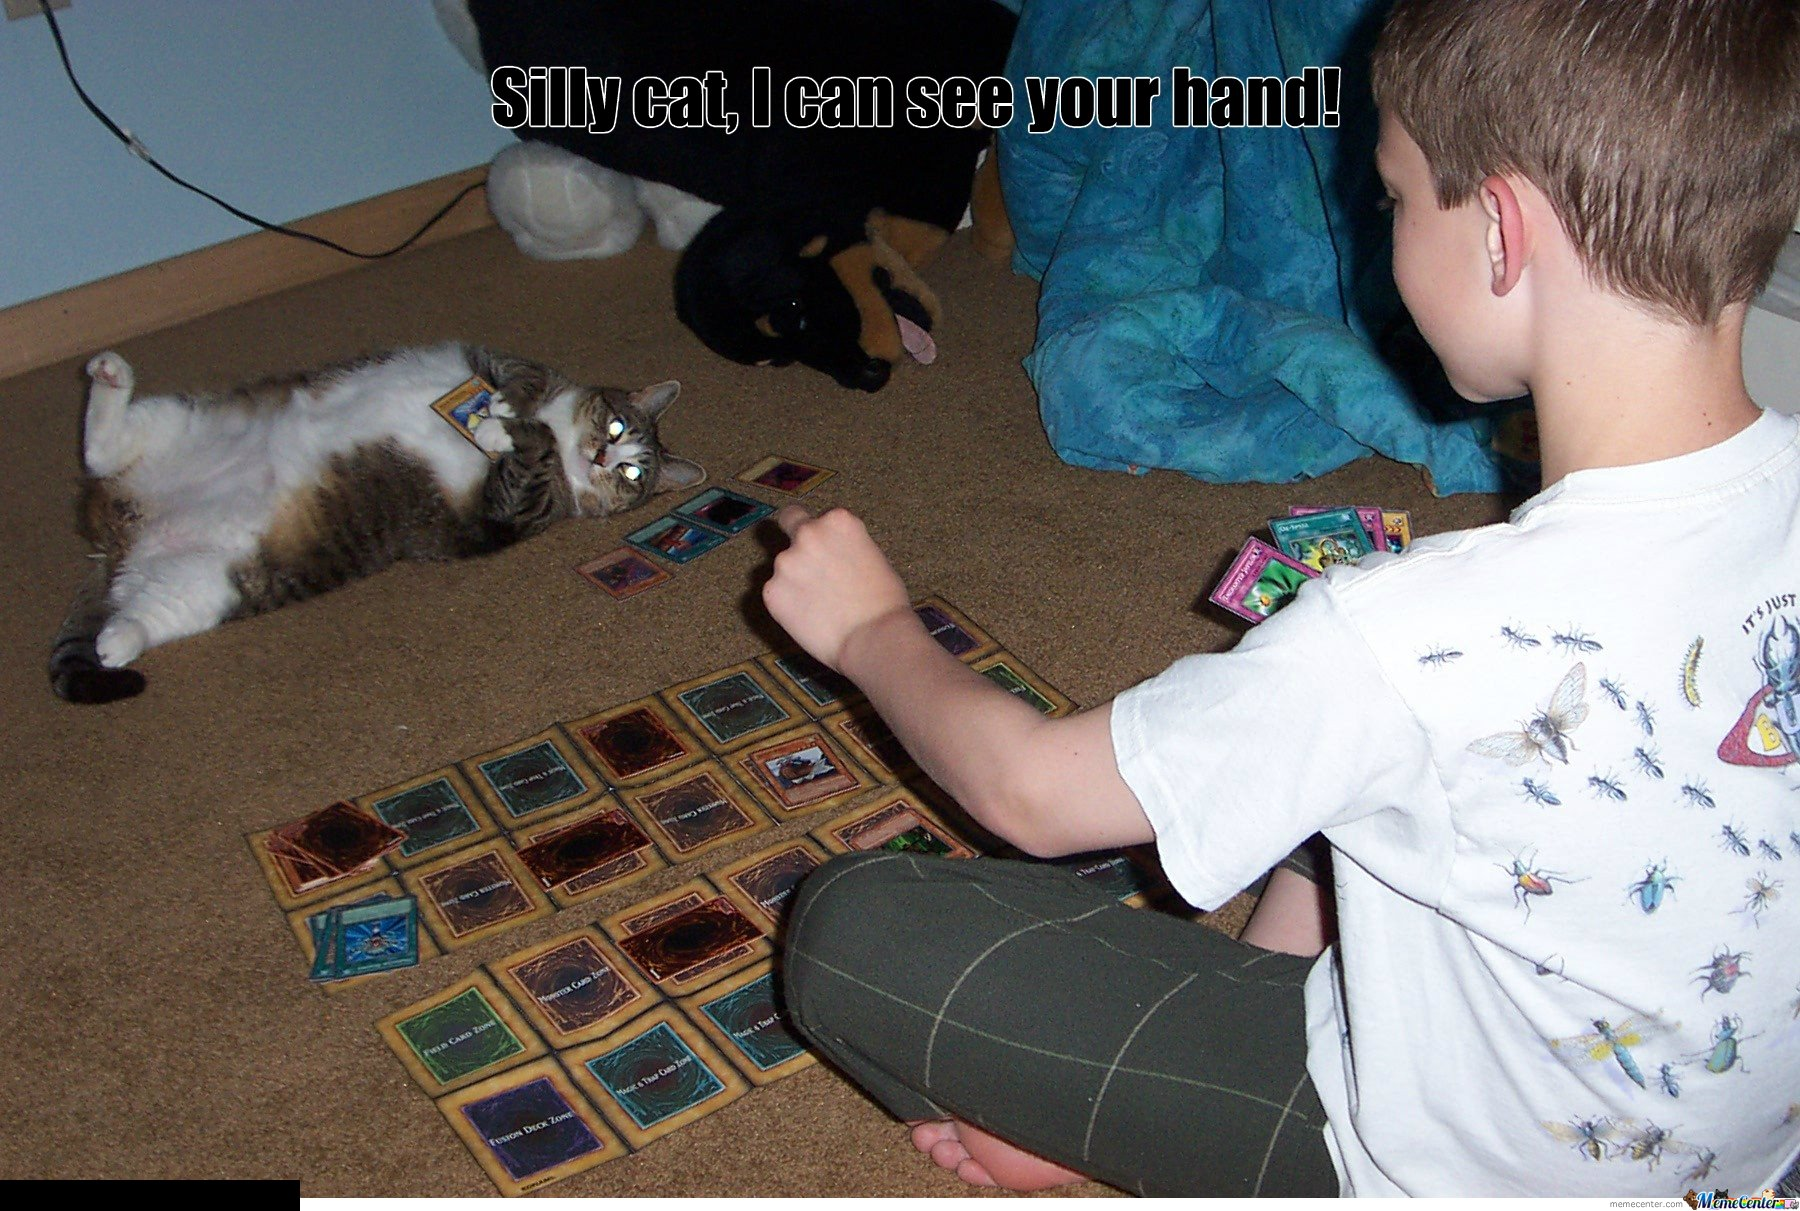 Silly cat,  I can see your hand!